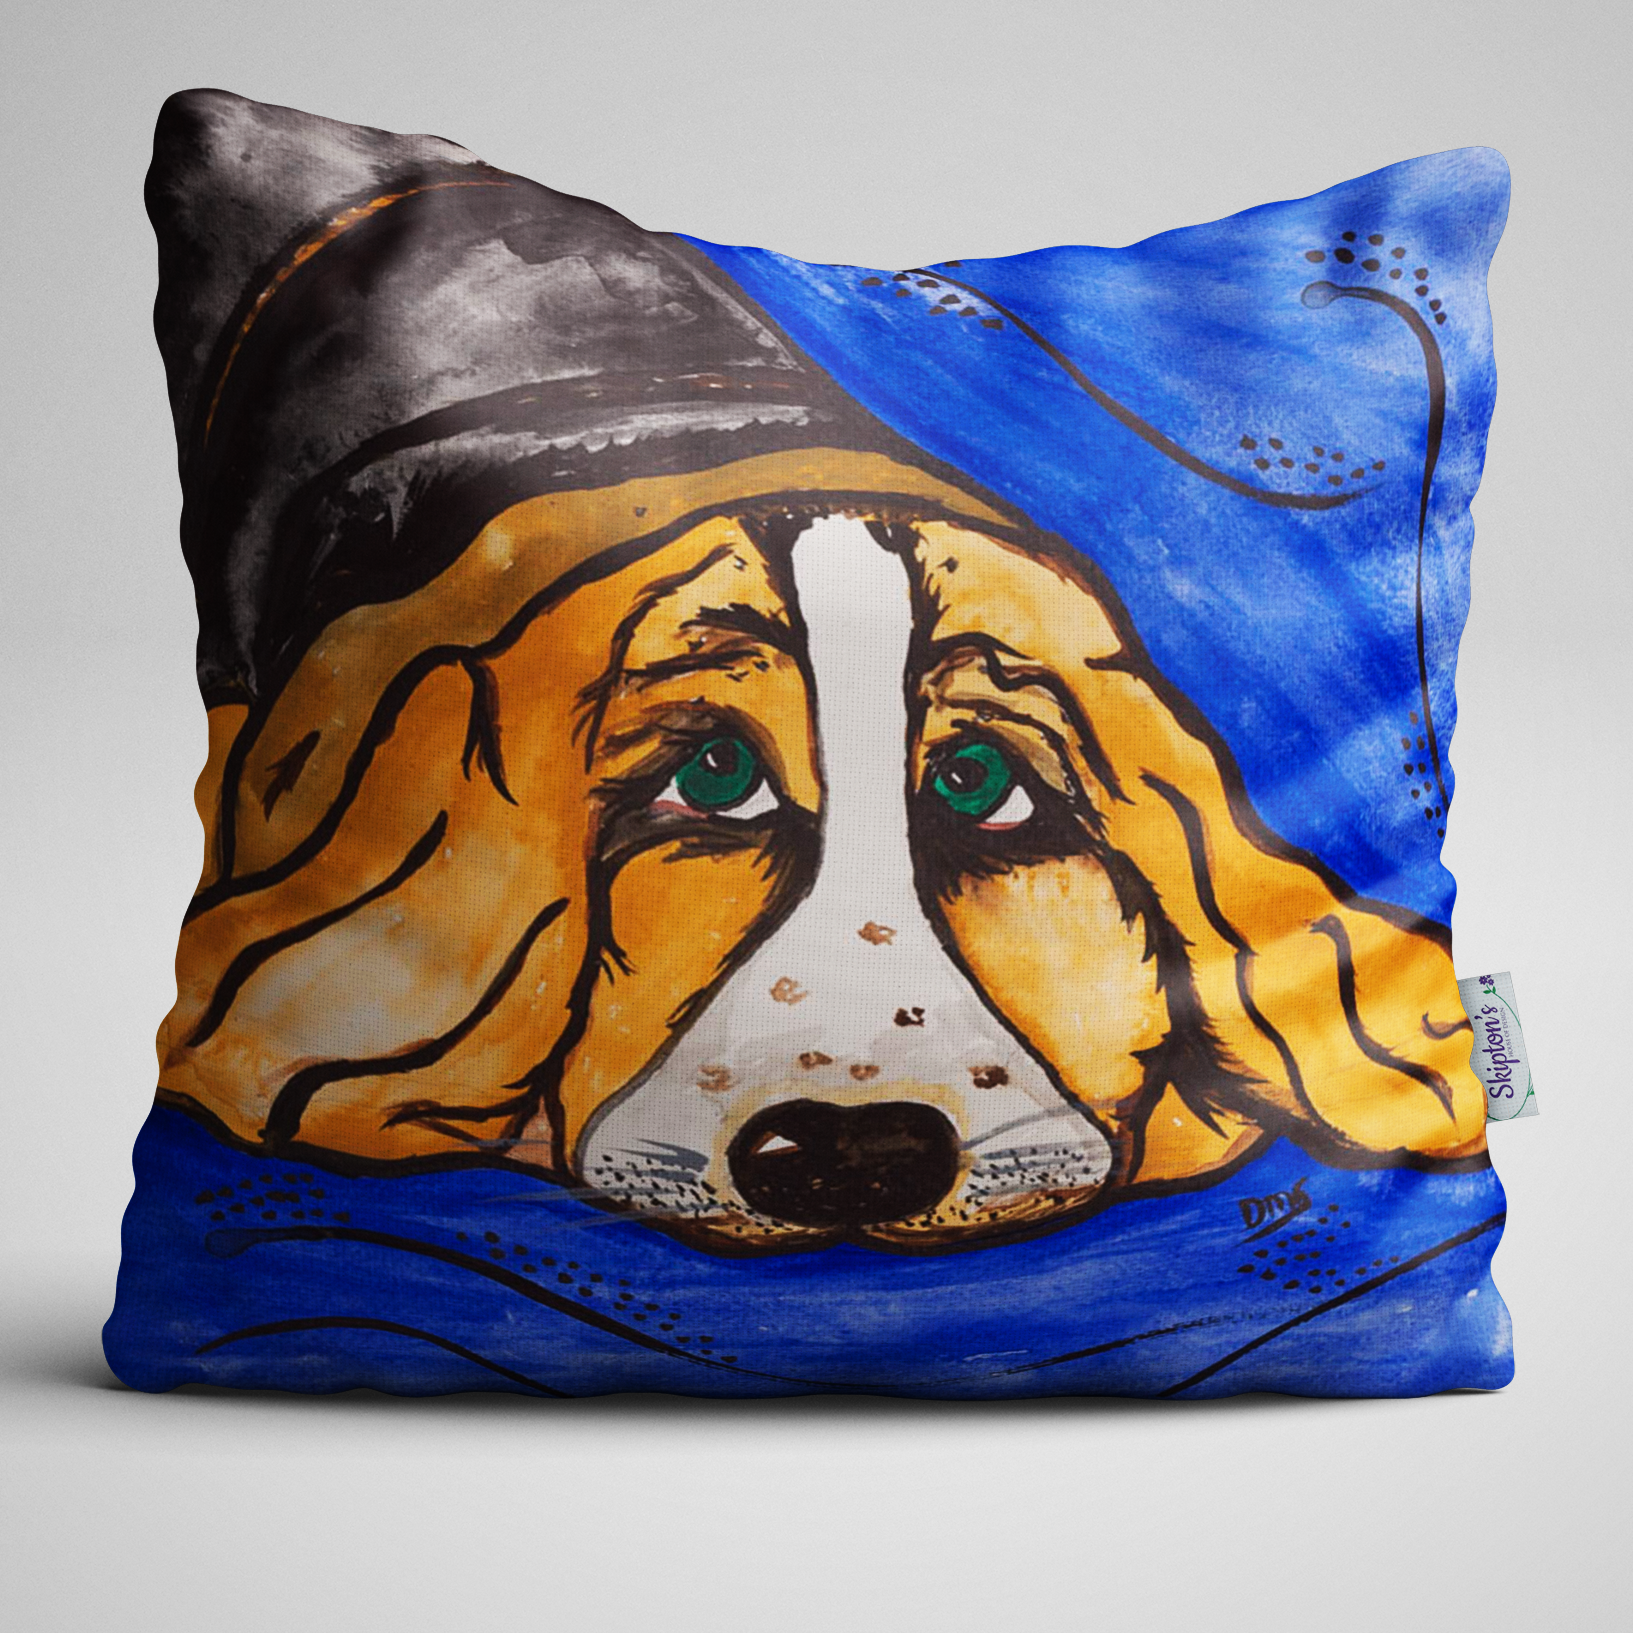 Luxury Velvet Cushion with Basset Hound design